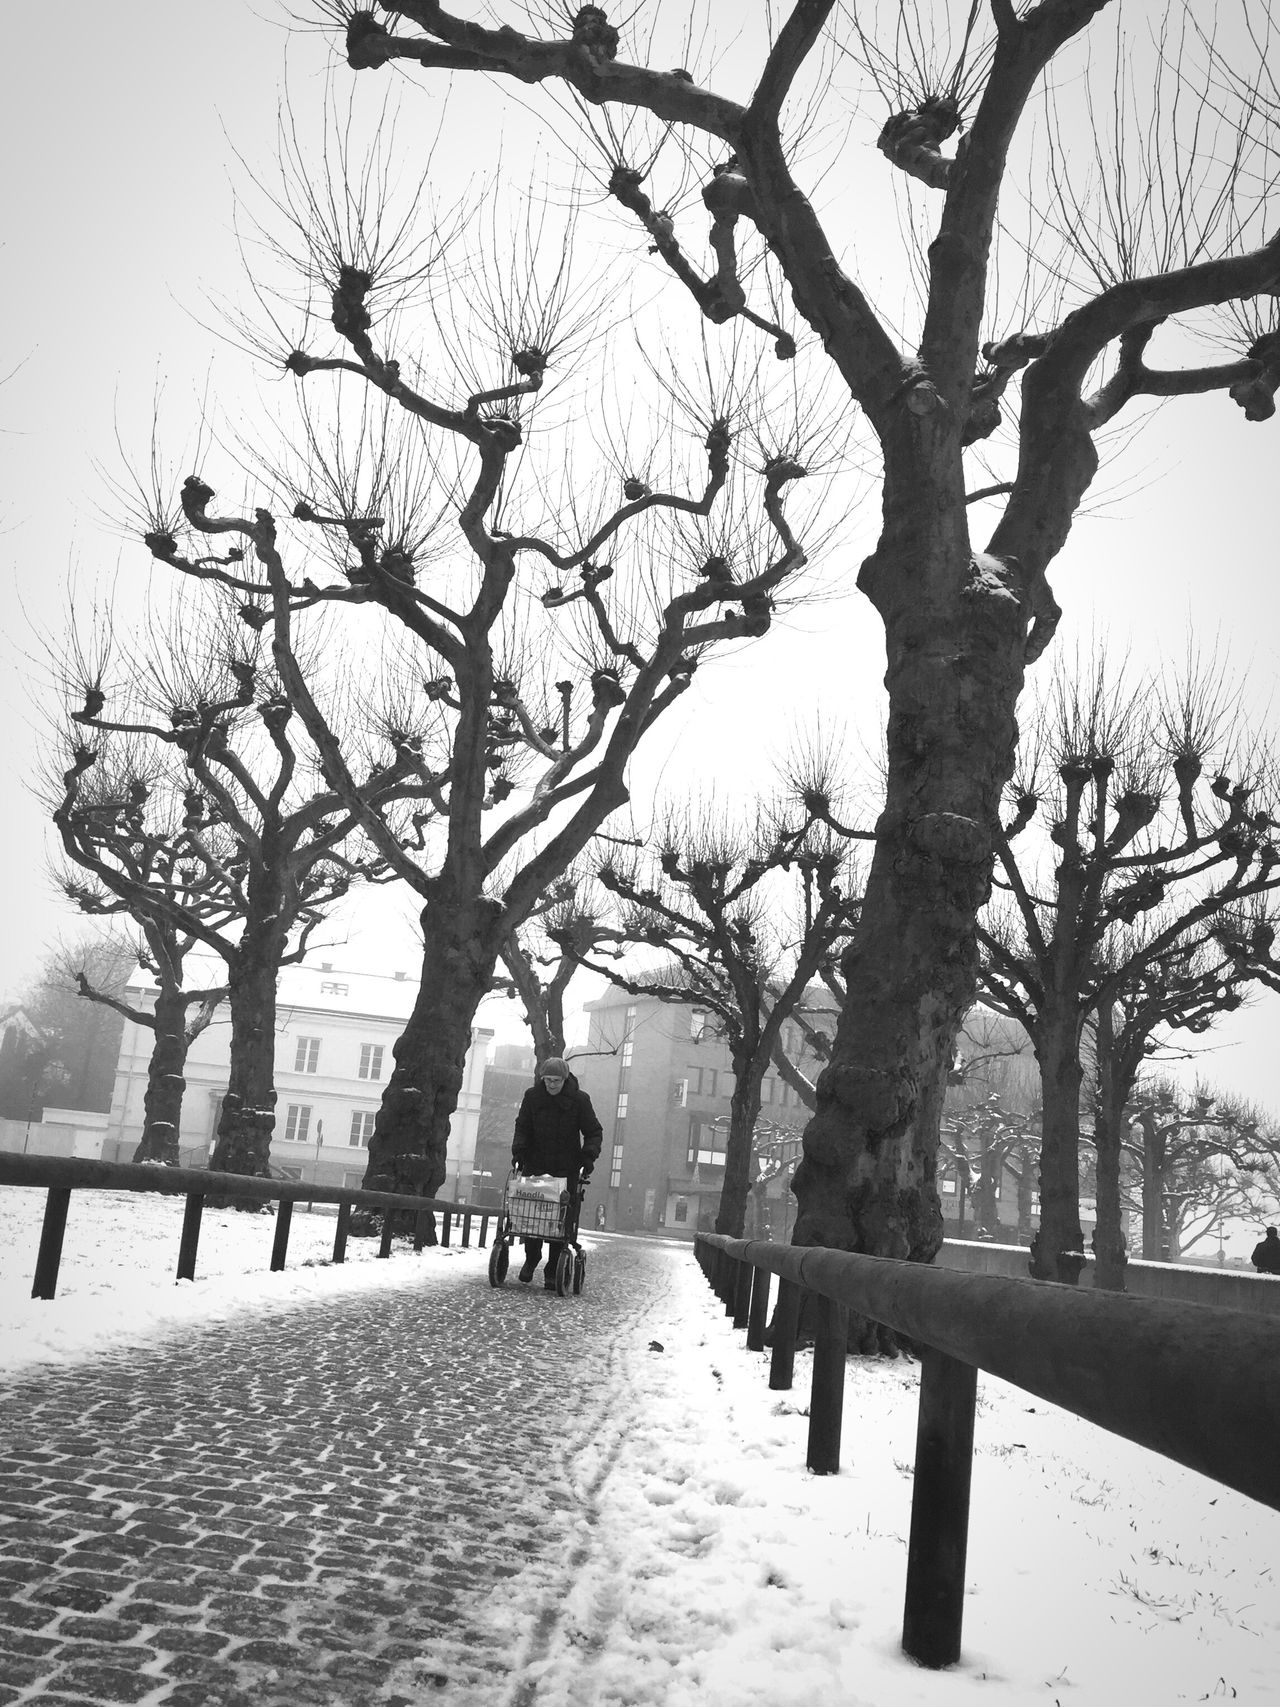 Bare Tree Outdoors Tree EyeEm Best Shots - Black + White Black And White Bw_collection